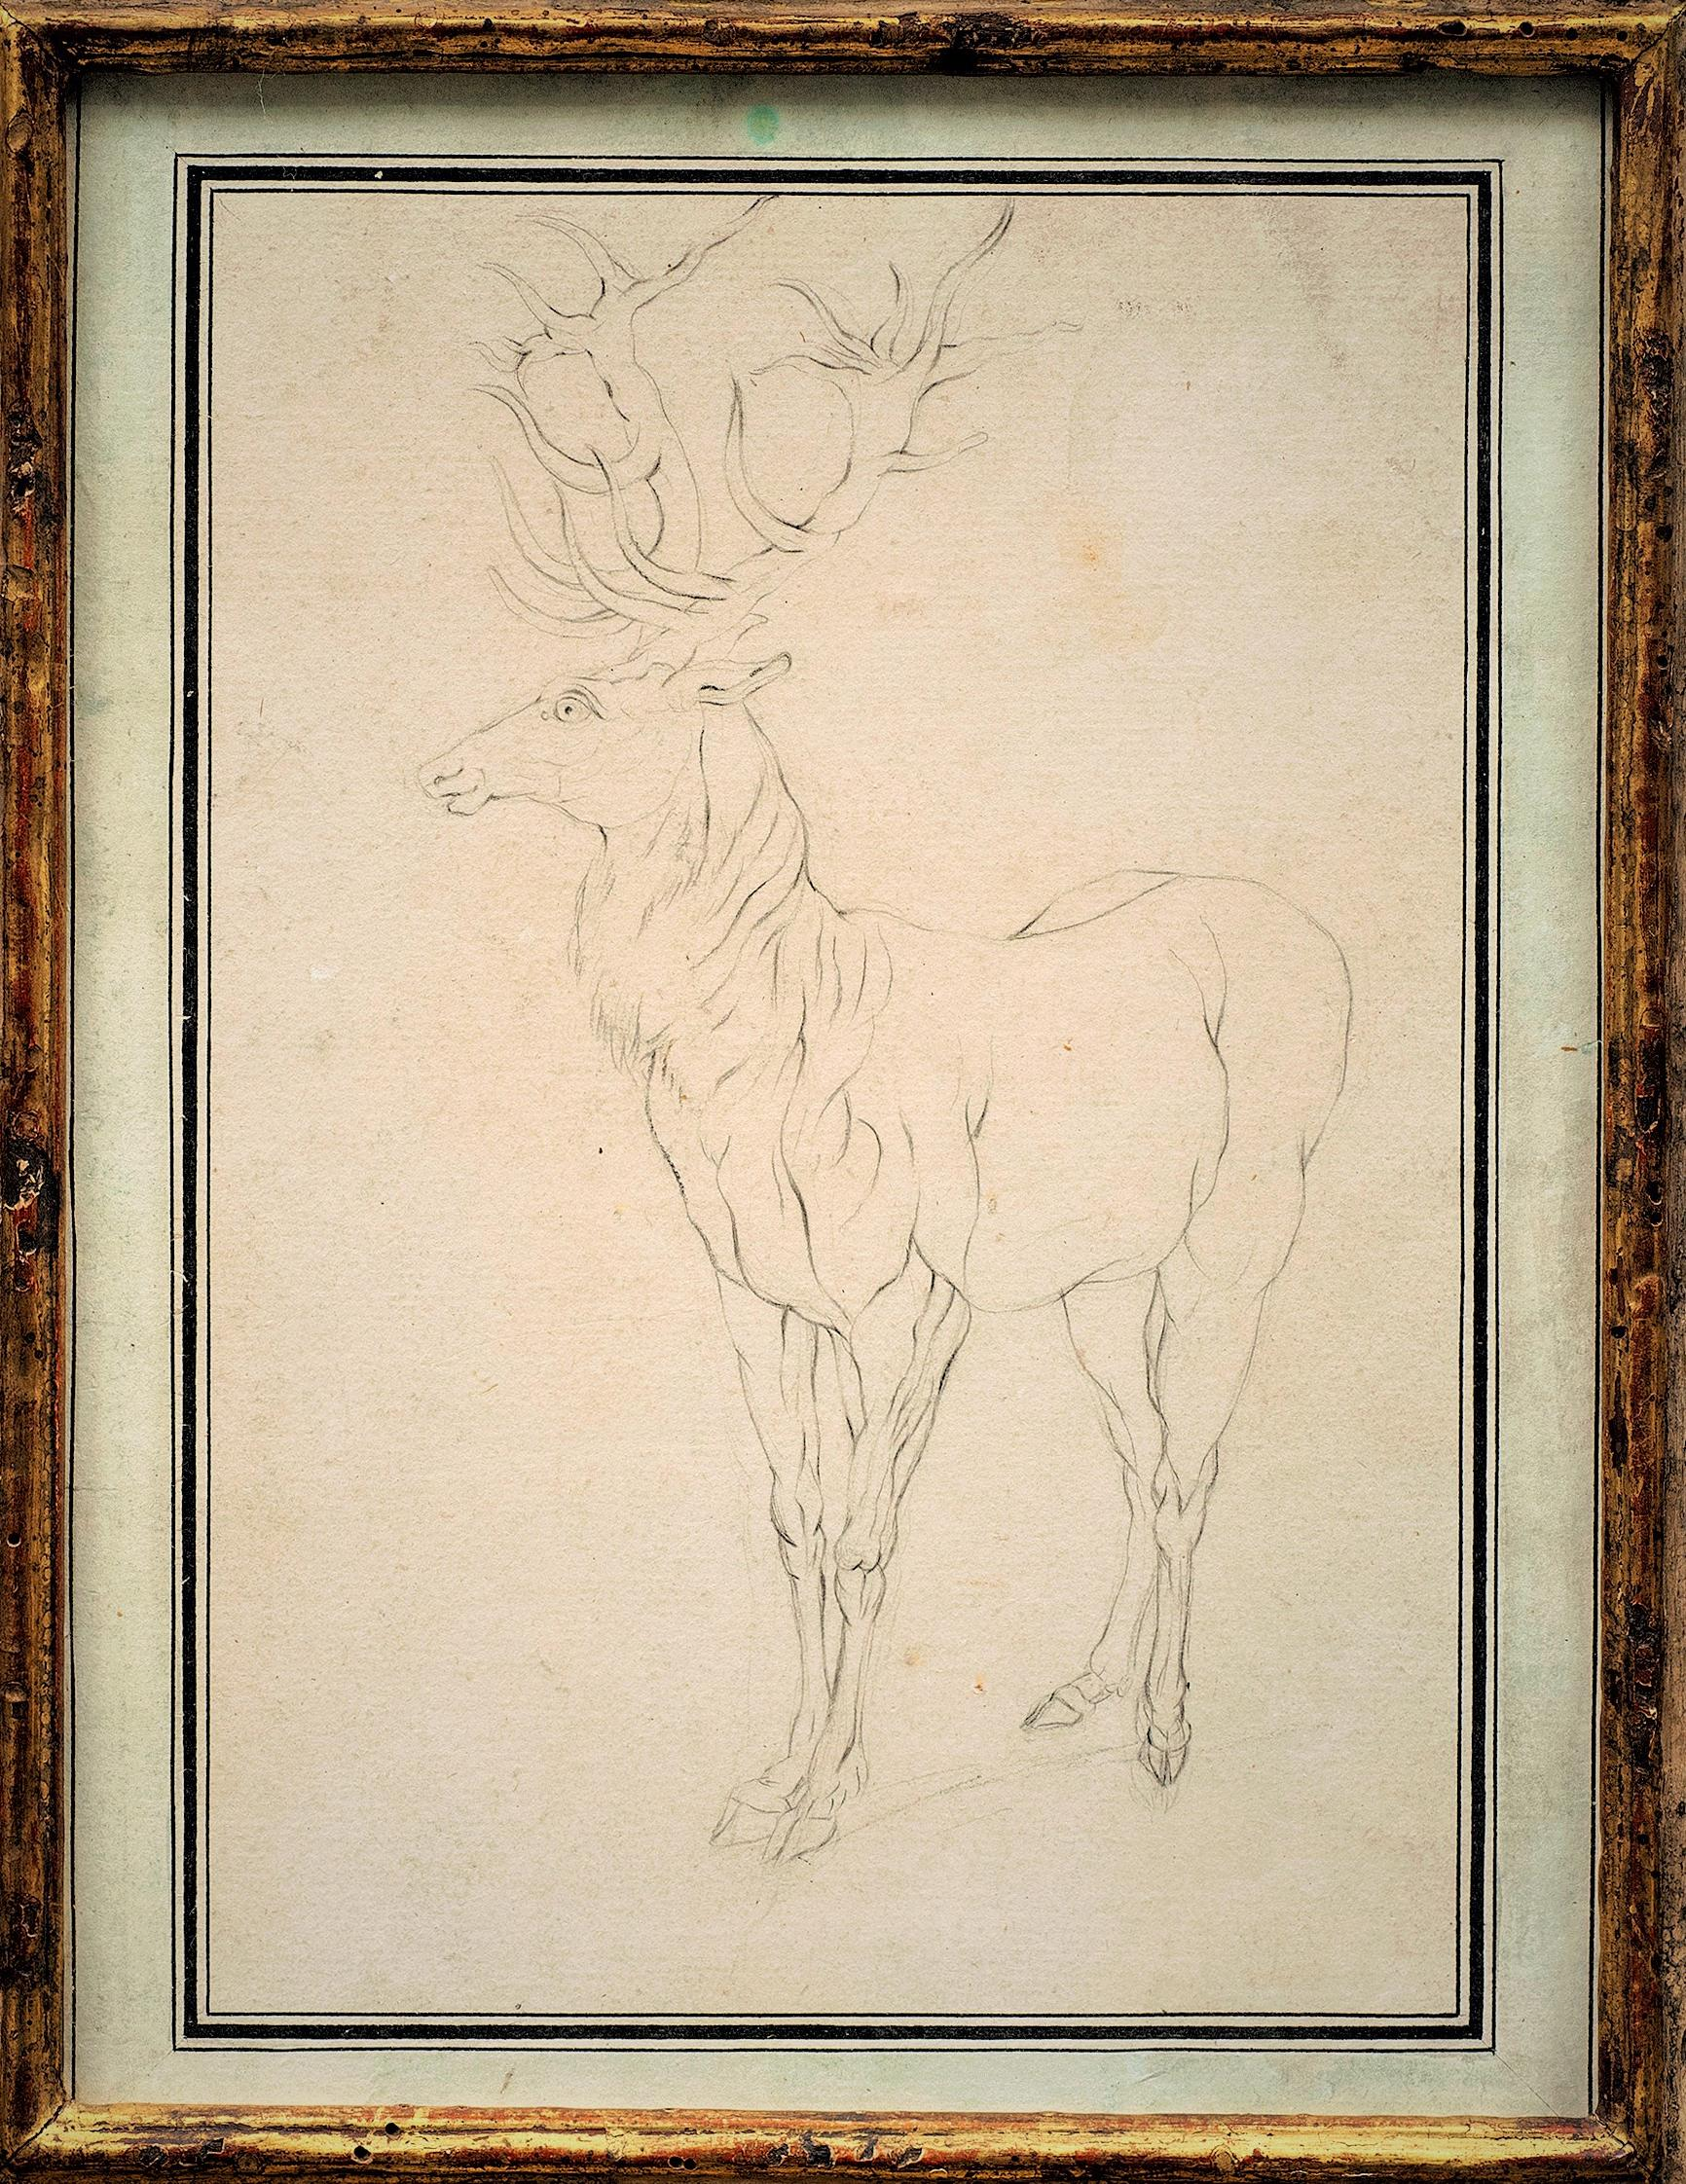 """Drawing: """"Stag Looking Left"""" by Johann Elias Ridinger (German 1698-1767)"""